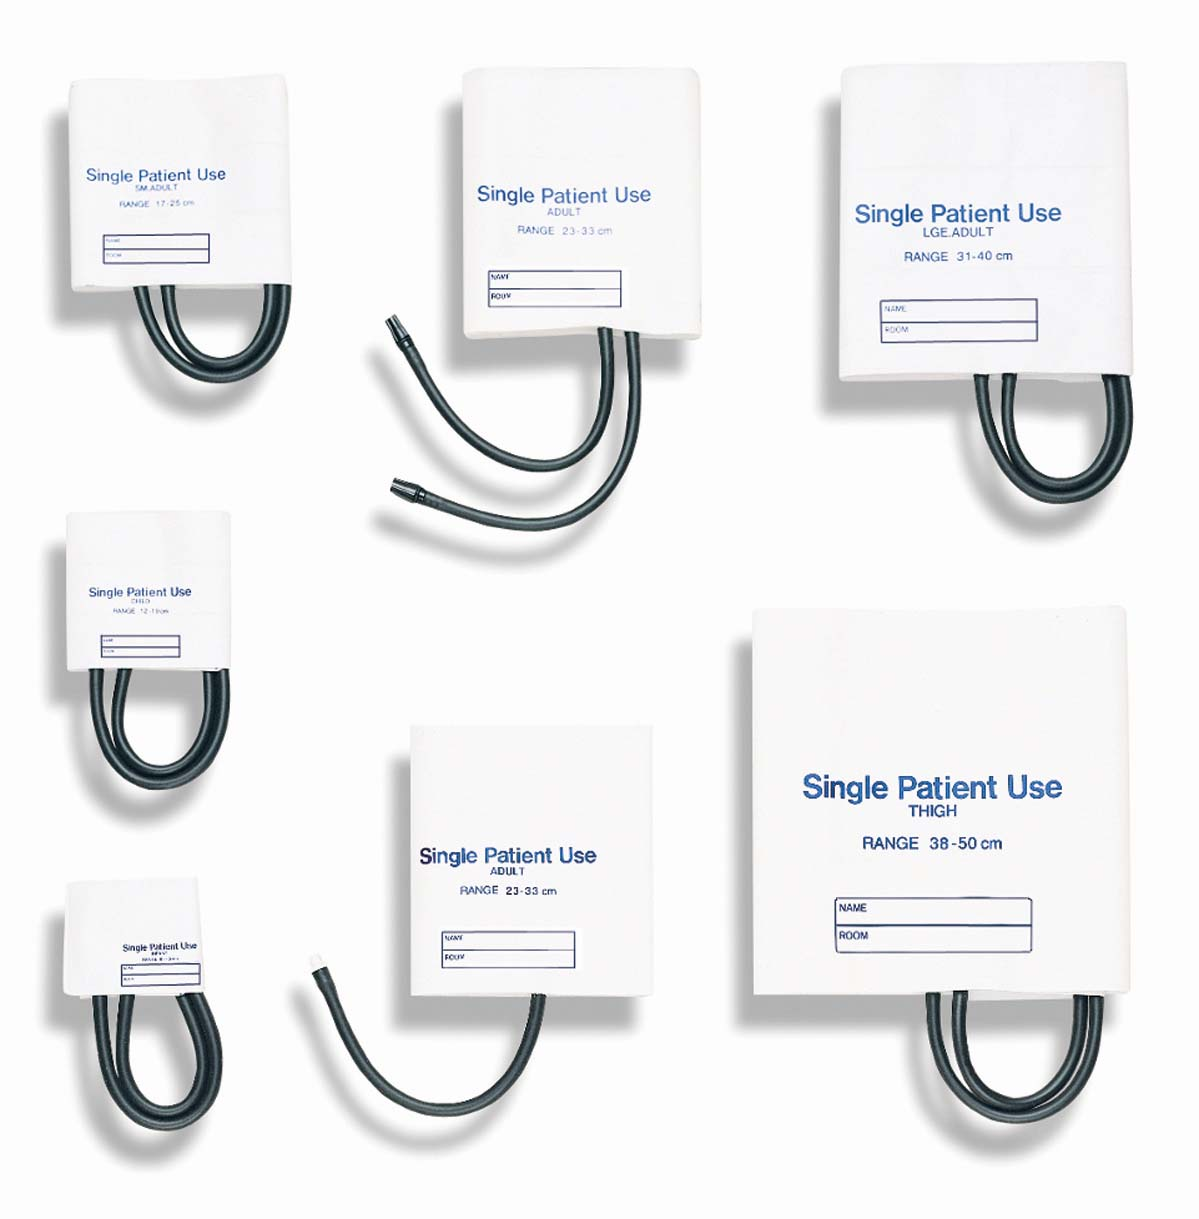 single-patient-use-two-tube-inflation-system-infant-white-5-box-06-214-193-lr-3.jpg